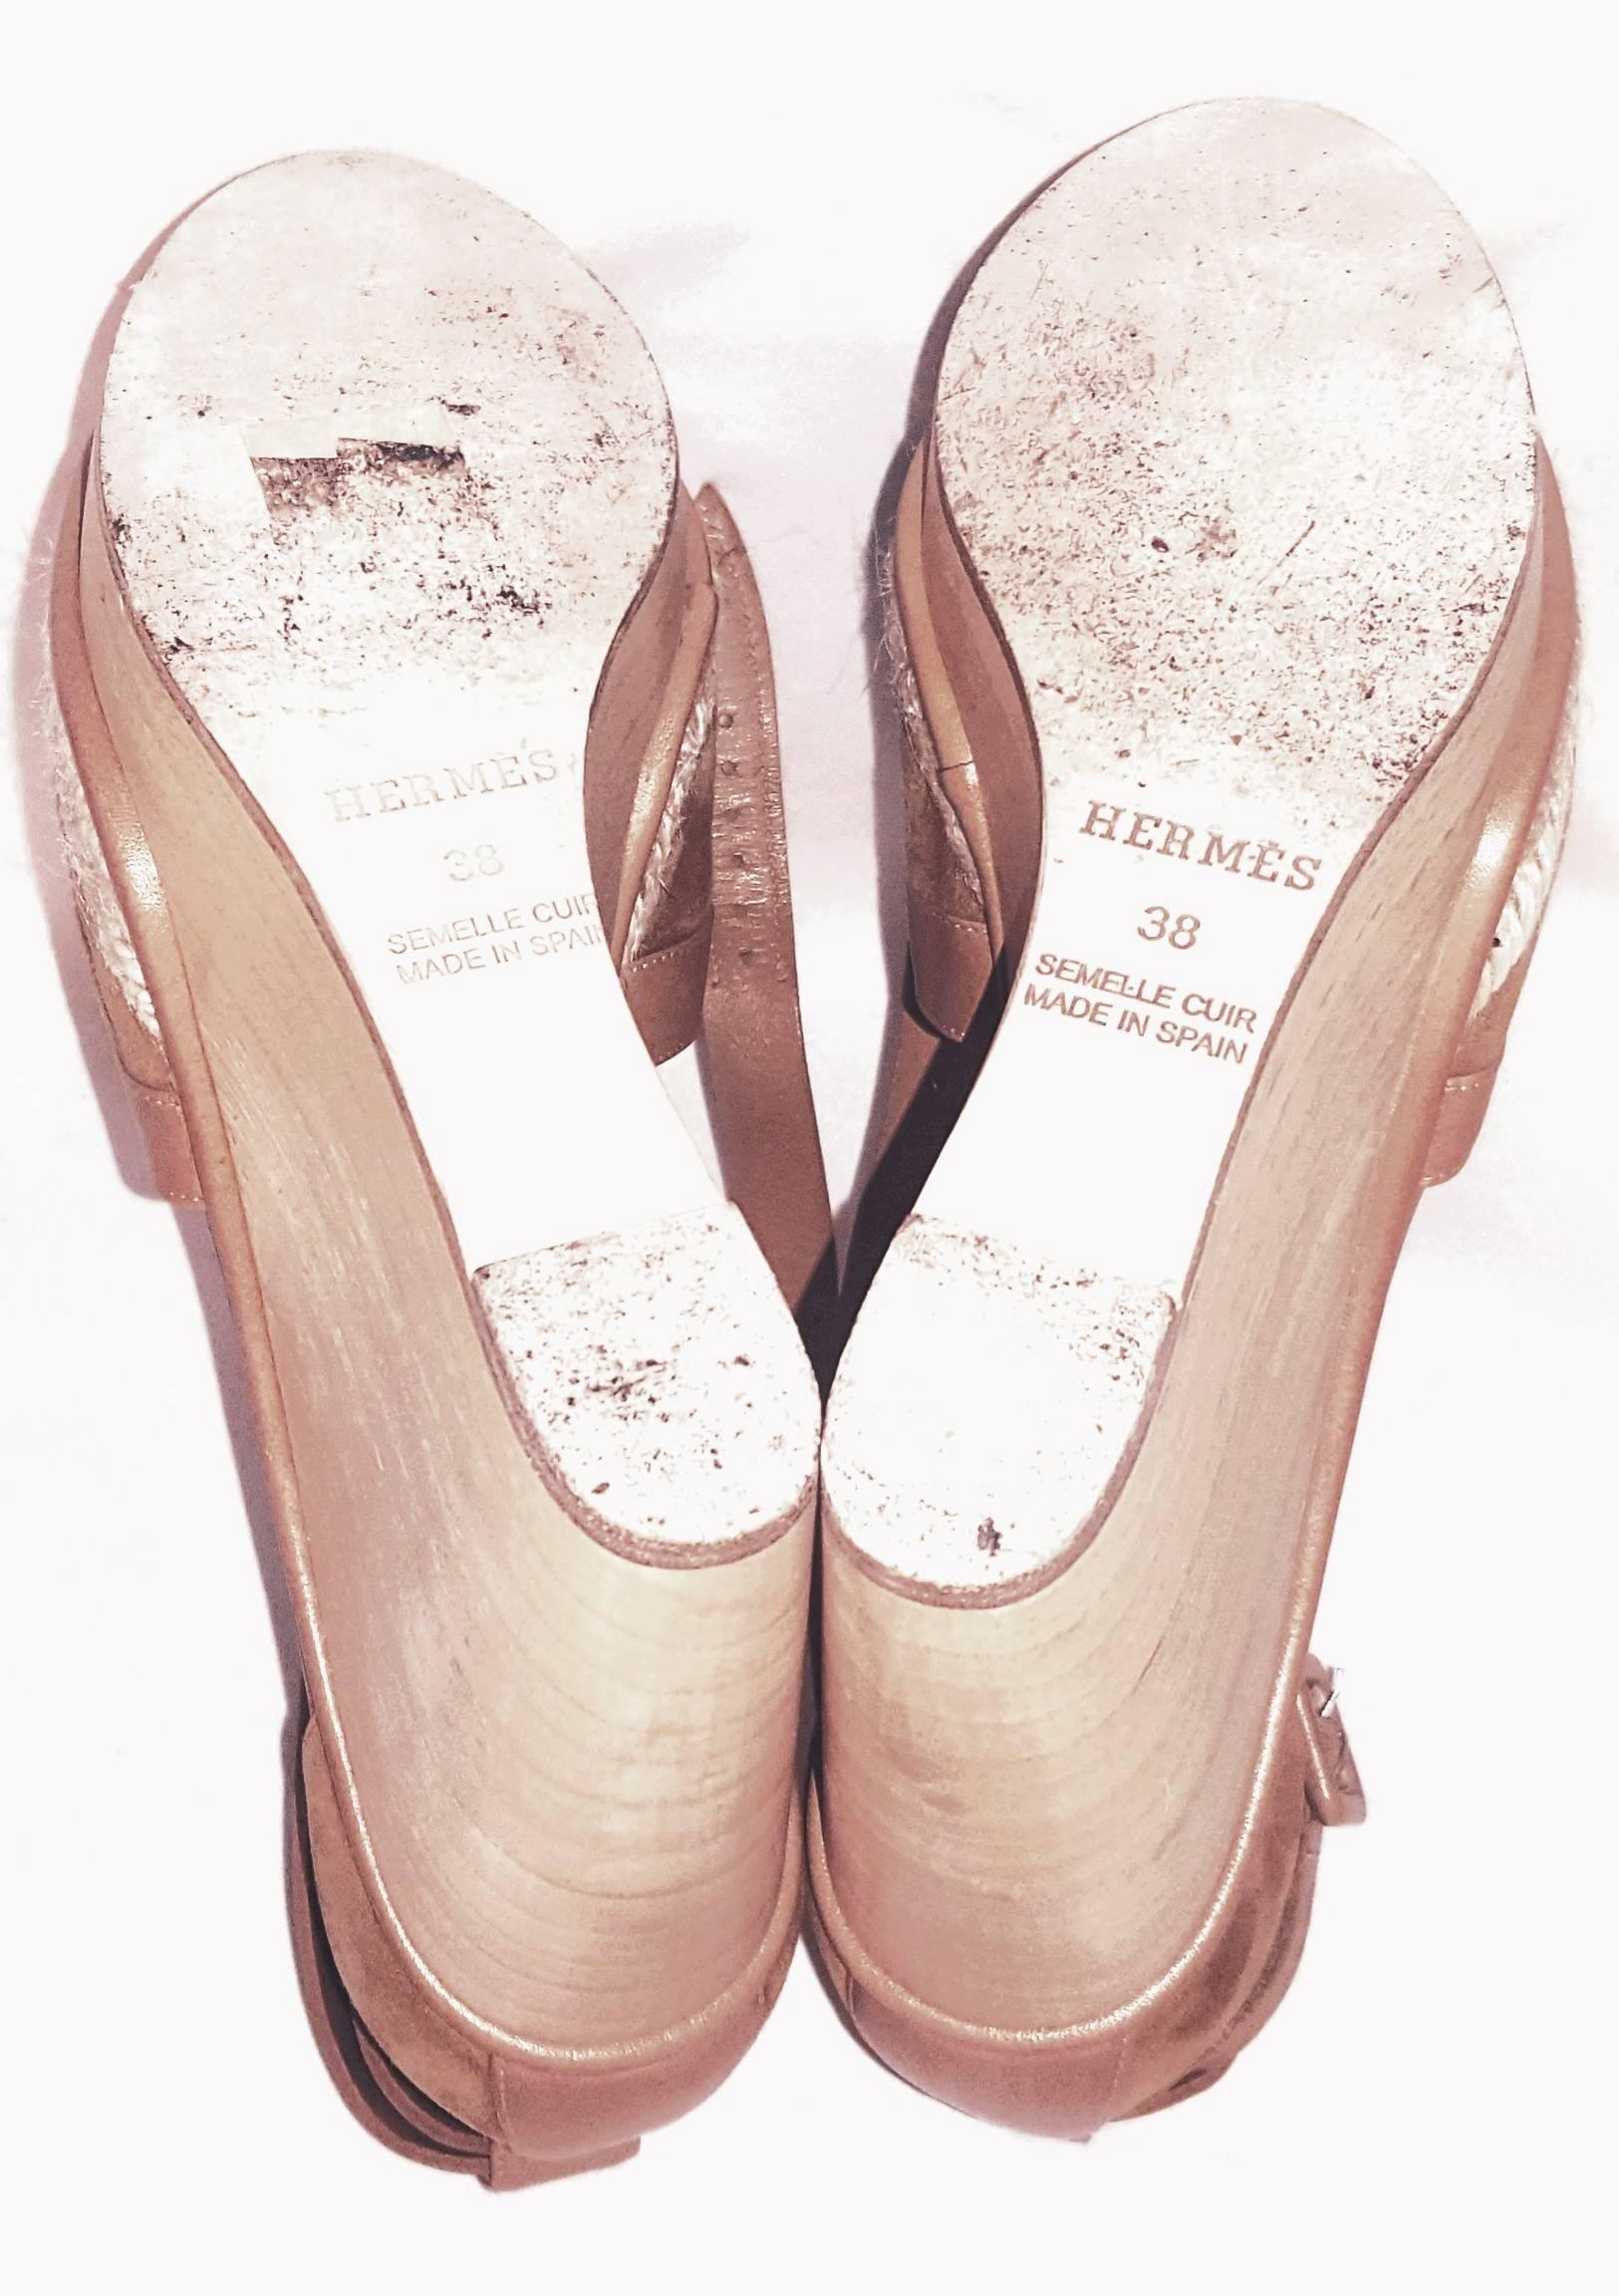 027e5bd8c64e Hermes Tan Suede and Leather Wooden Wedge Ibiza Sandals at 1stdibs